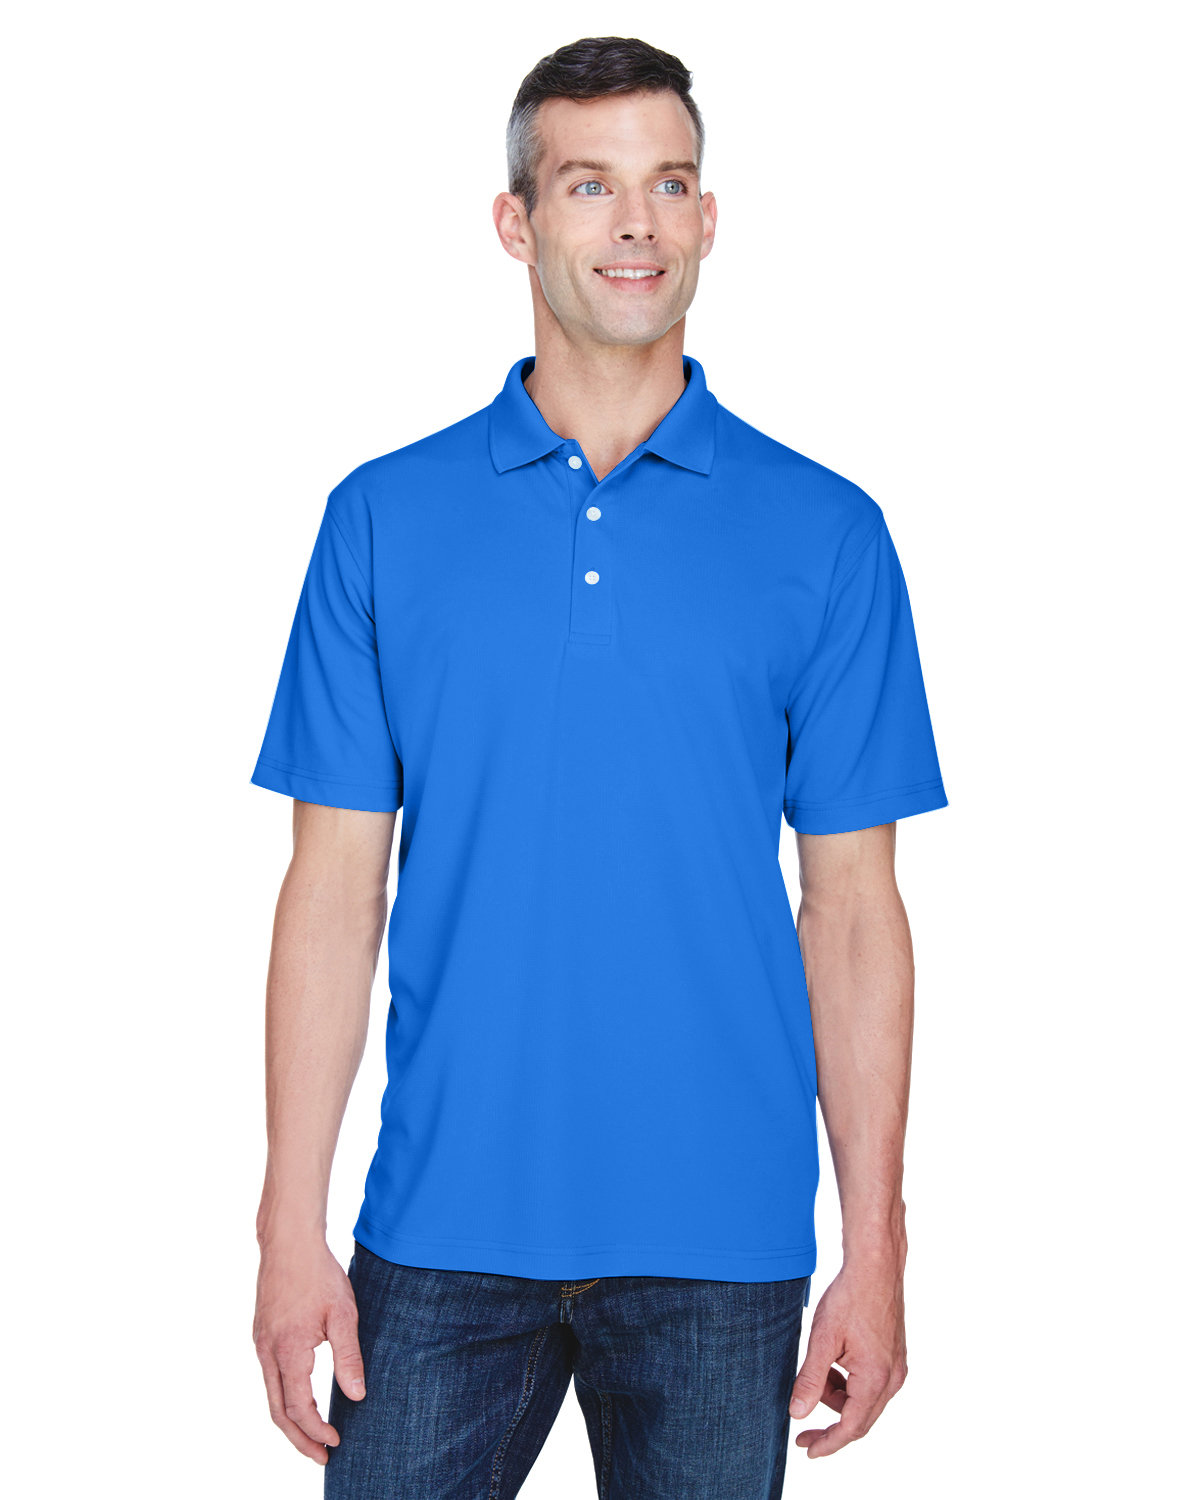 UltraClub Men's Cool & Dry Stain-Release Performance Polo ROYAL